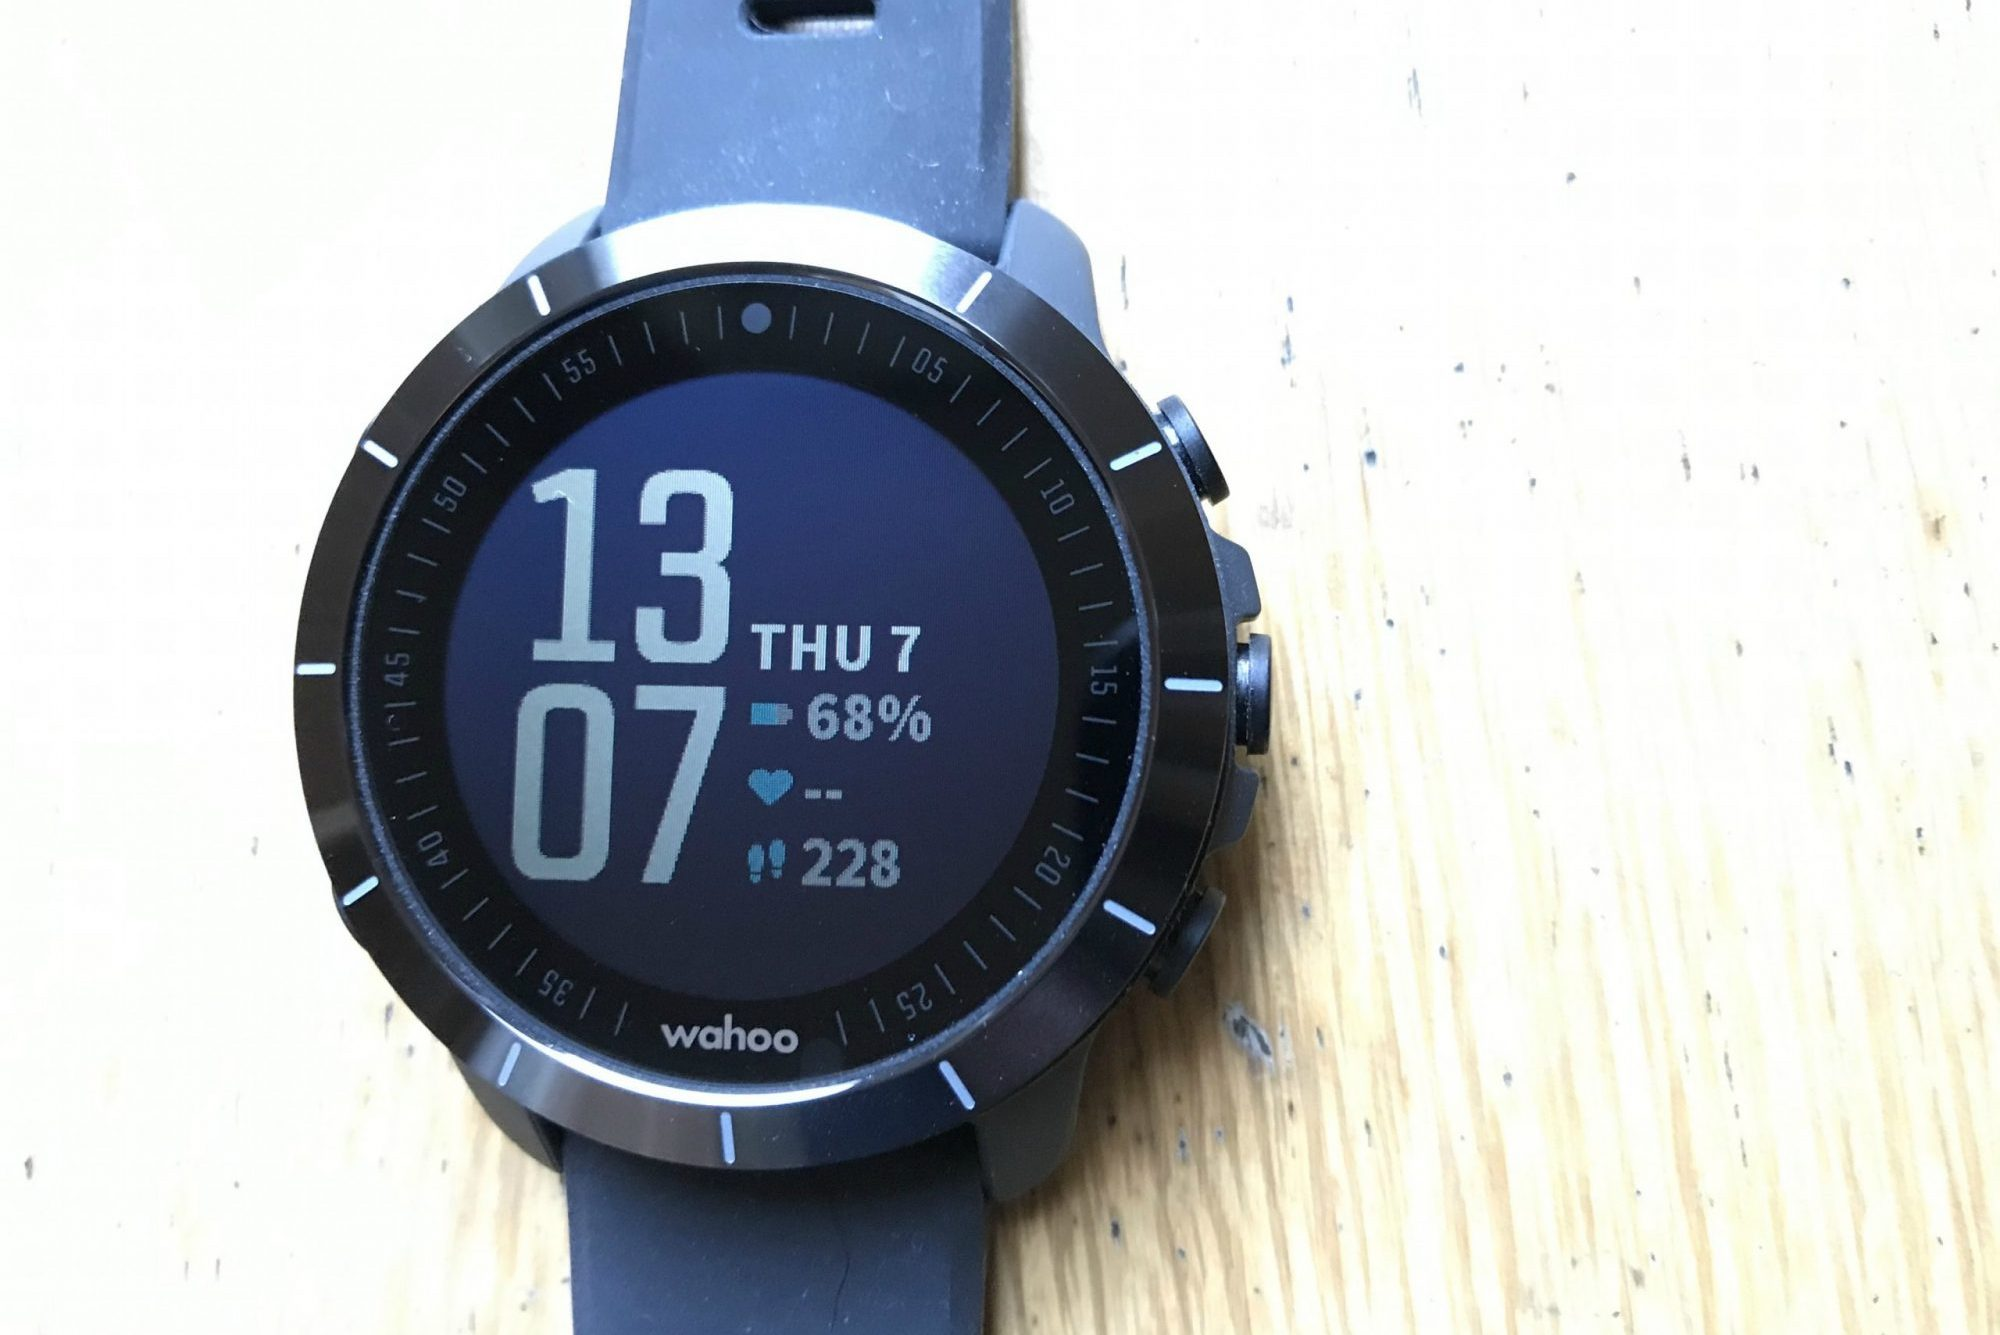 Wahoo Elemnt Rival multisport watch review